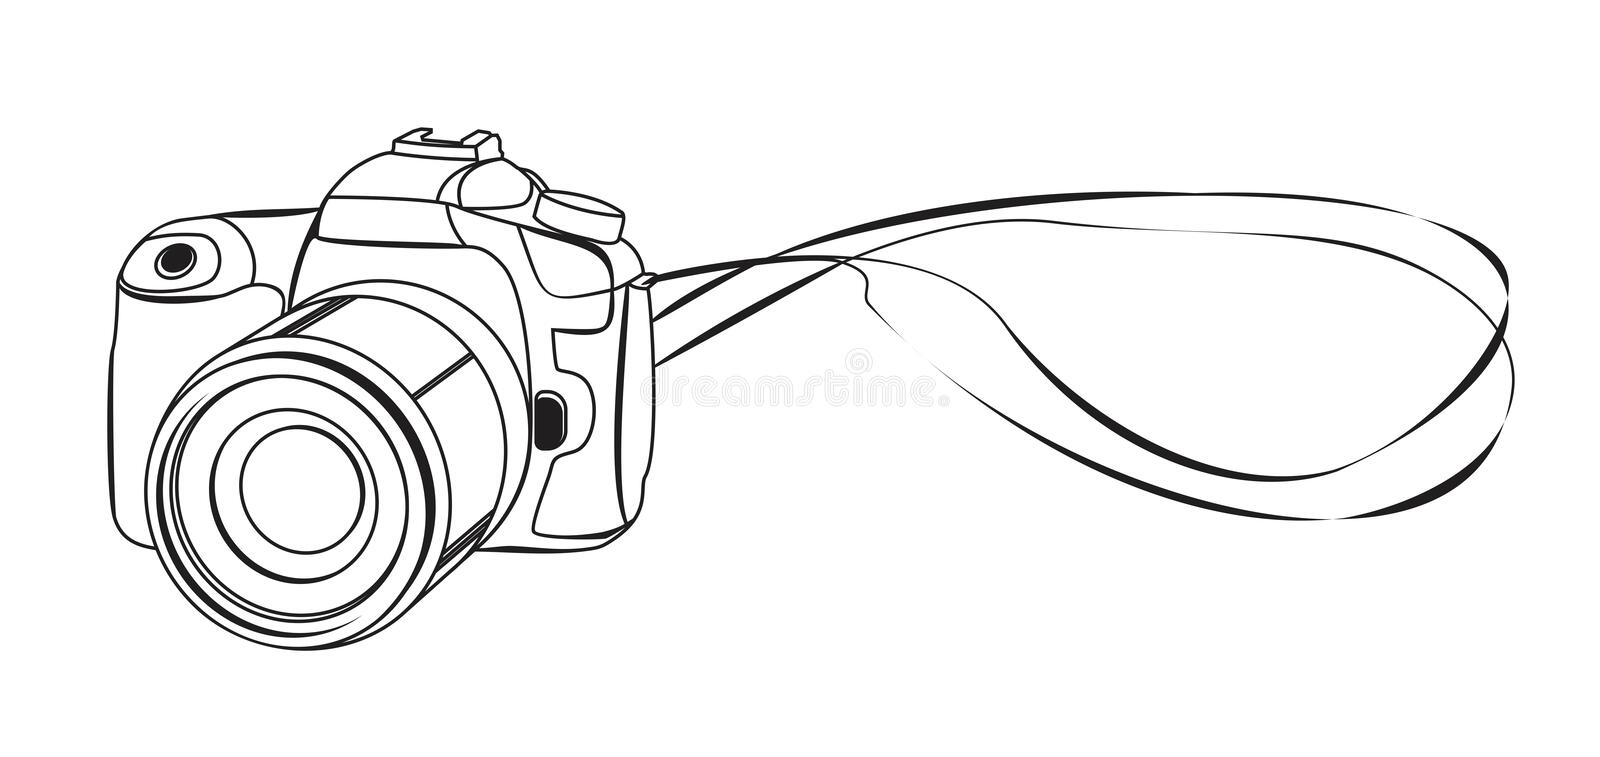 Sketch of DSLR camera Vector royalty free illustration